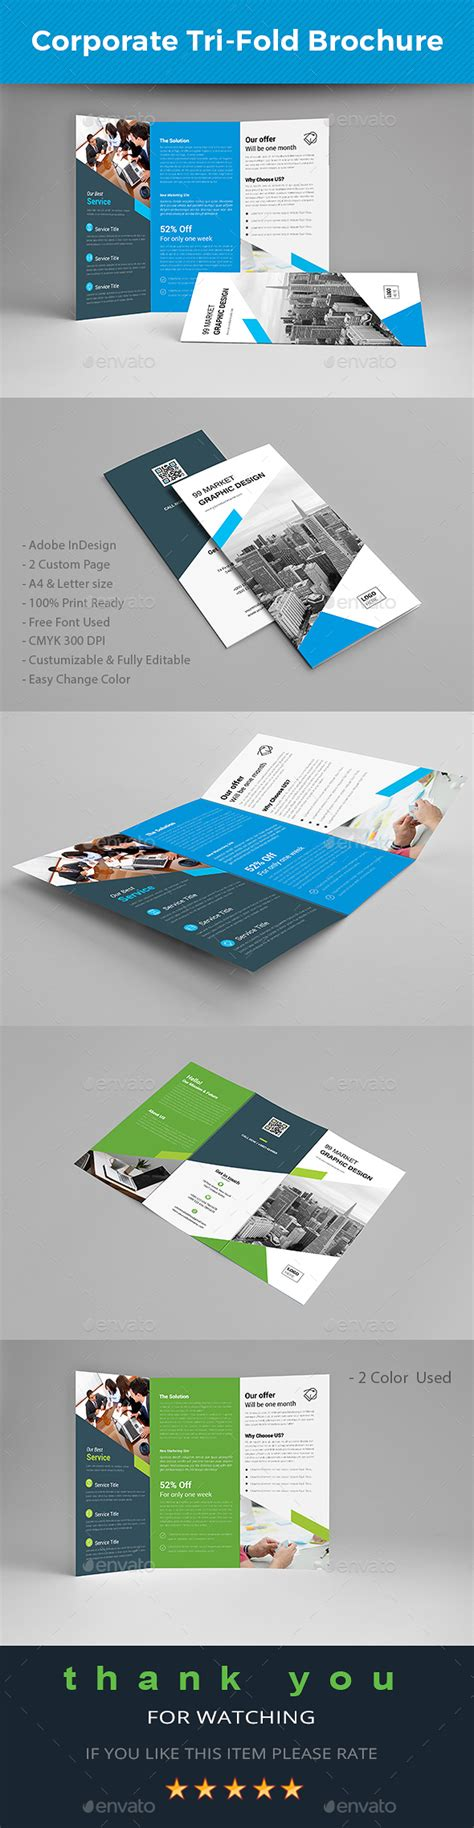 tri fold brochure template indesign cs6 tri fold brochure by 99market graphicriver